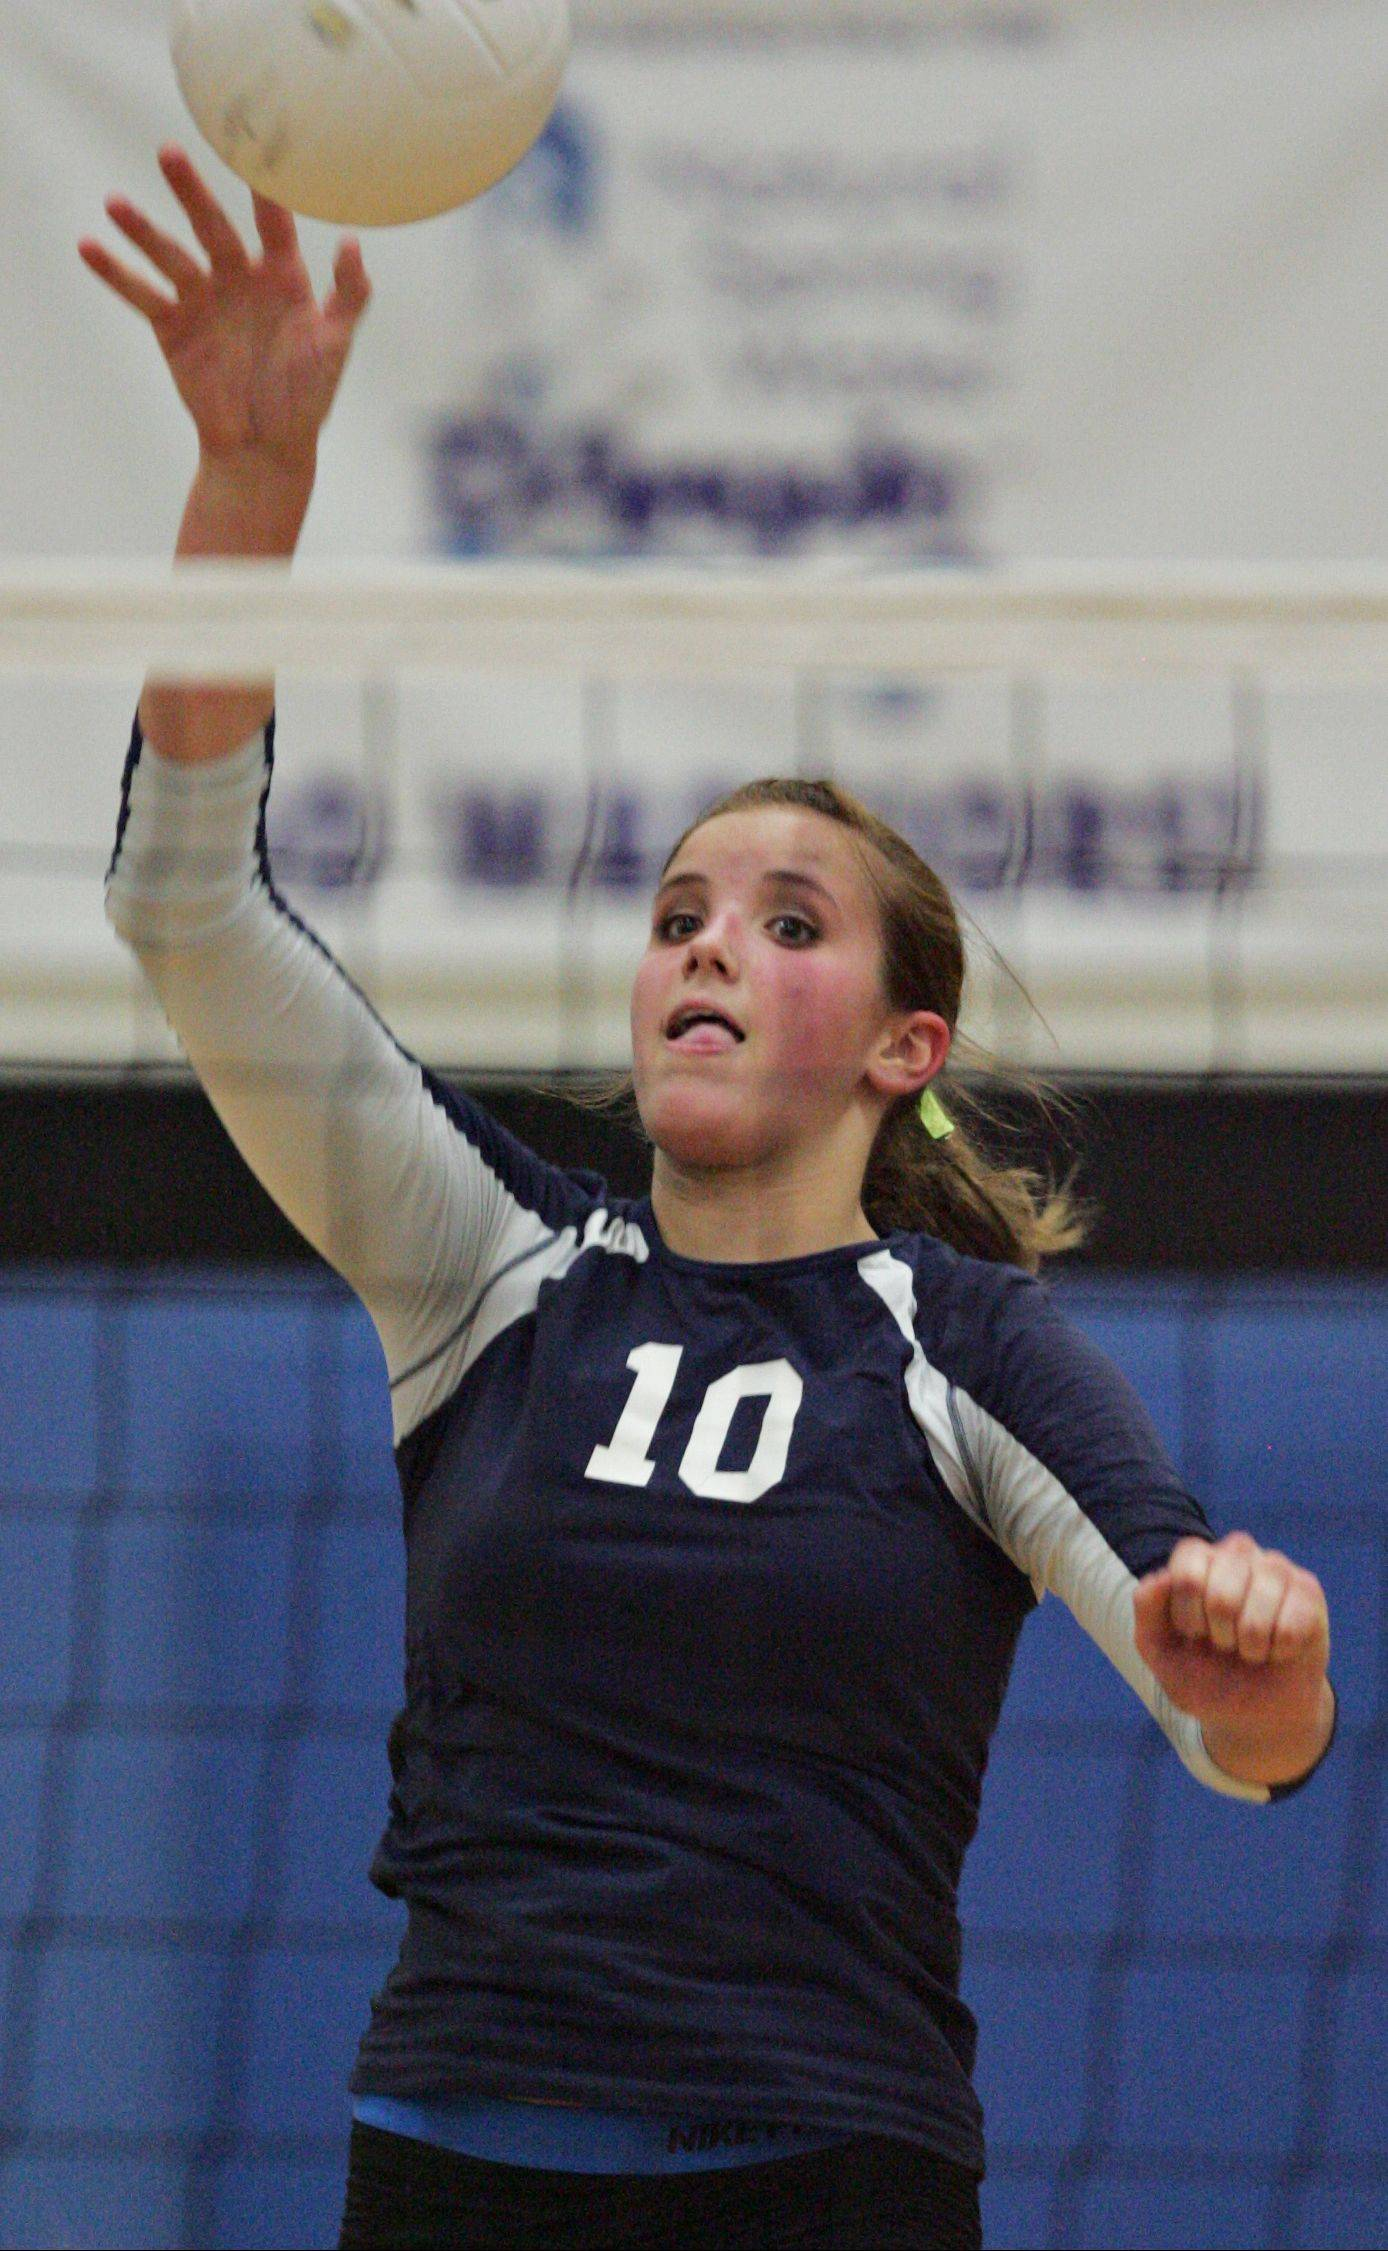 Senior Sydney Doby is back to lead Harvest Christian�s volleyball team again this season. The Lions have advanced to the Class 1A Elite Eight the past two years.